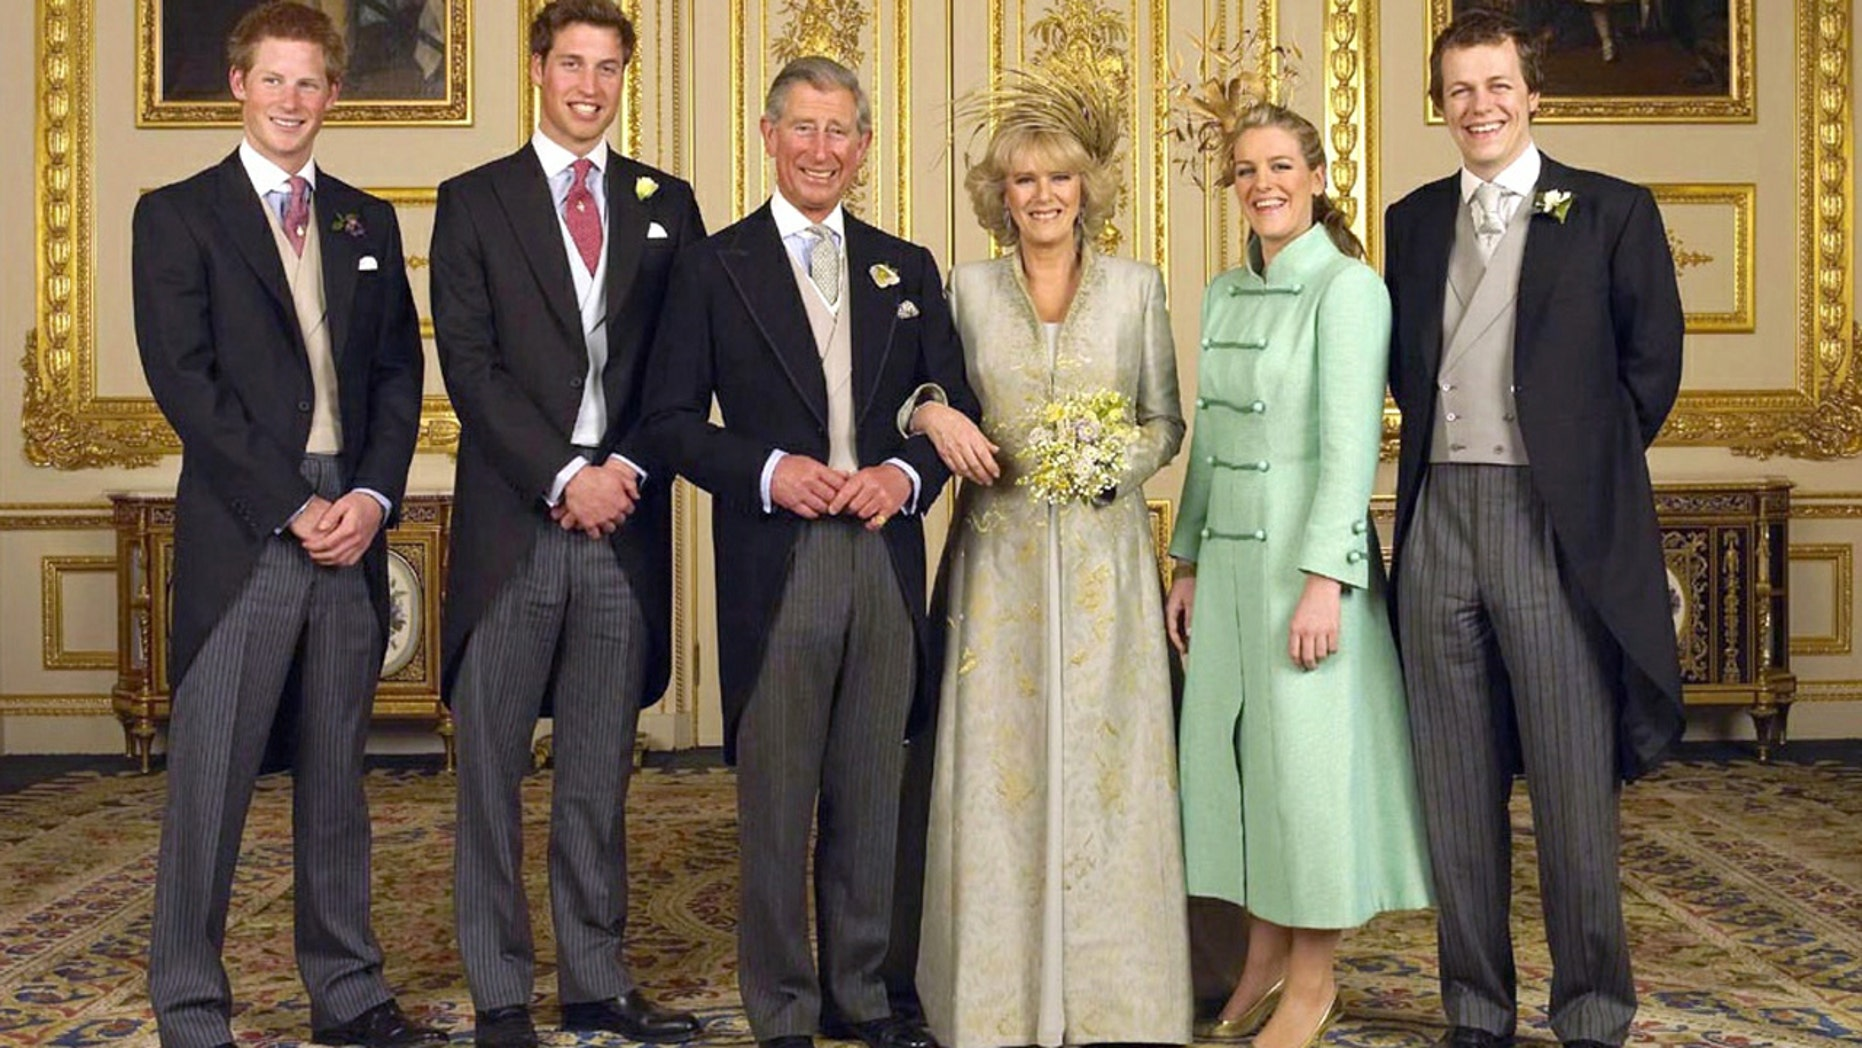 Prince Charles and Camilla Parker Bowles are pictured on their wedding with all of their children (L-R) Prince Harry, Prince William, Laura and Tom Parker Bowles, in the White Drawing Room at Windsor Castle, April 10, 2005.